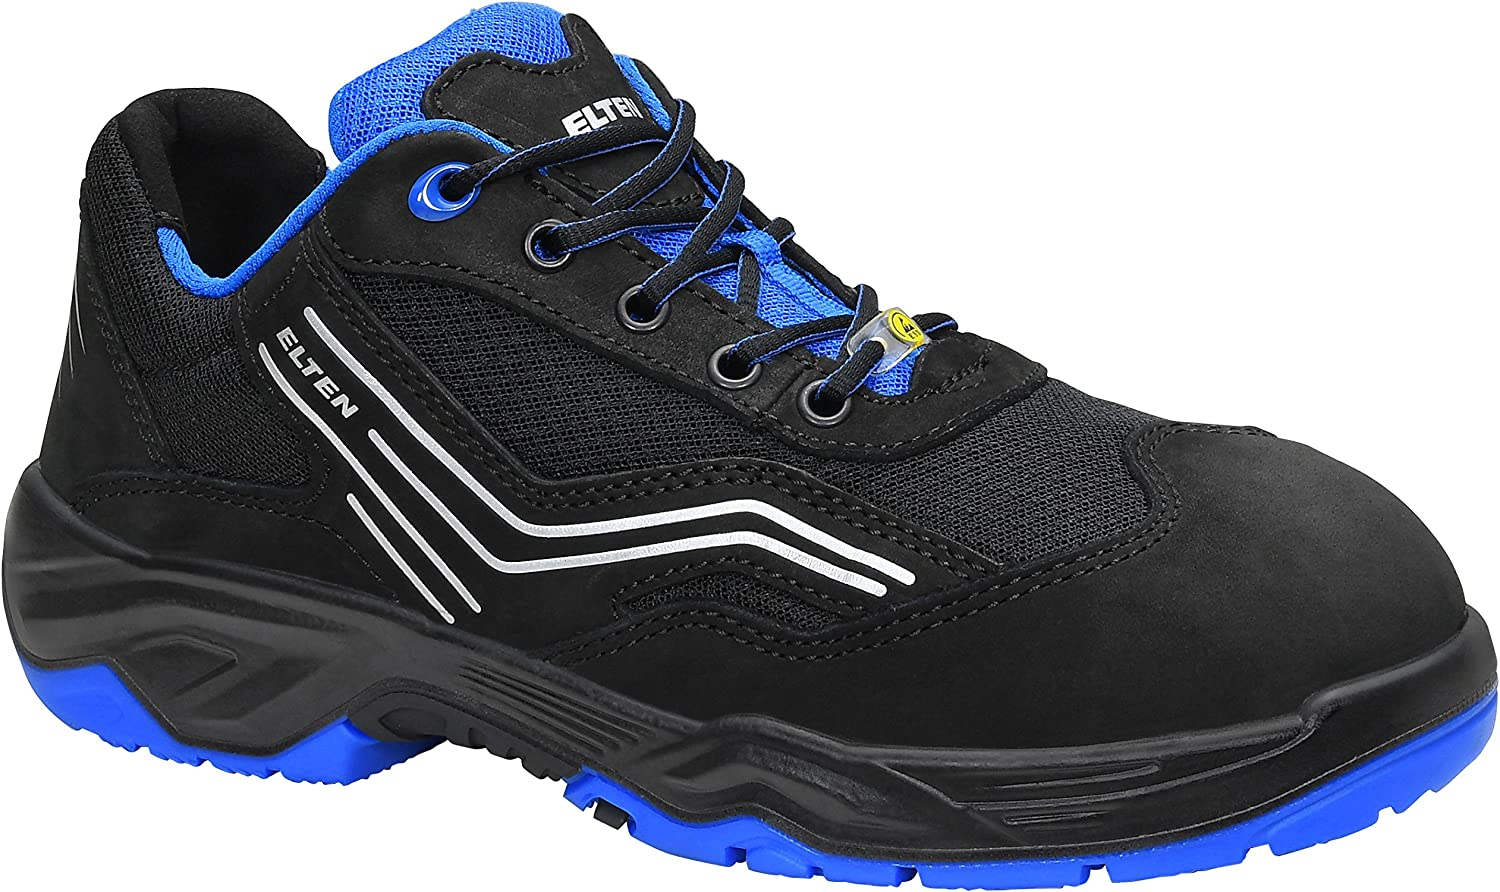 Elten 72733-36 Size 36 S1  Ambition bluee Low  Safety shoes - Multi-Colour - EN safety certified